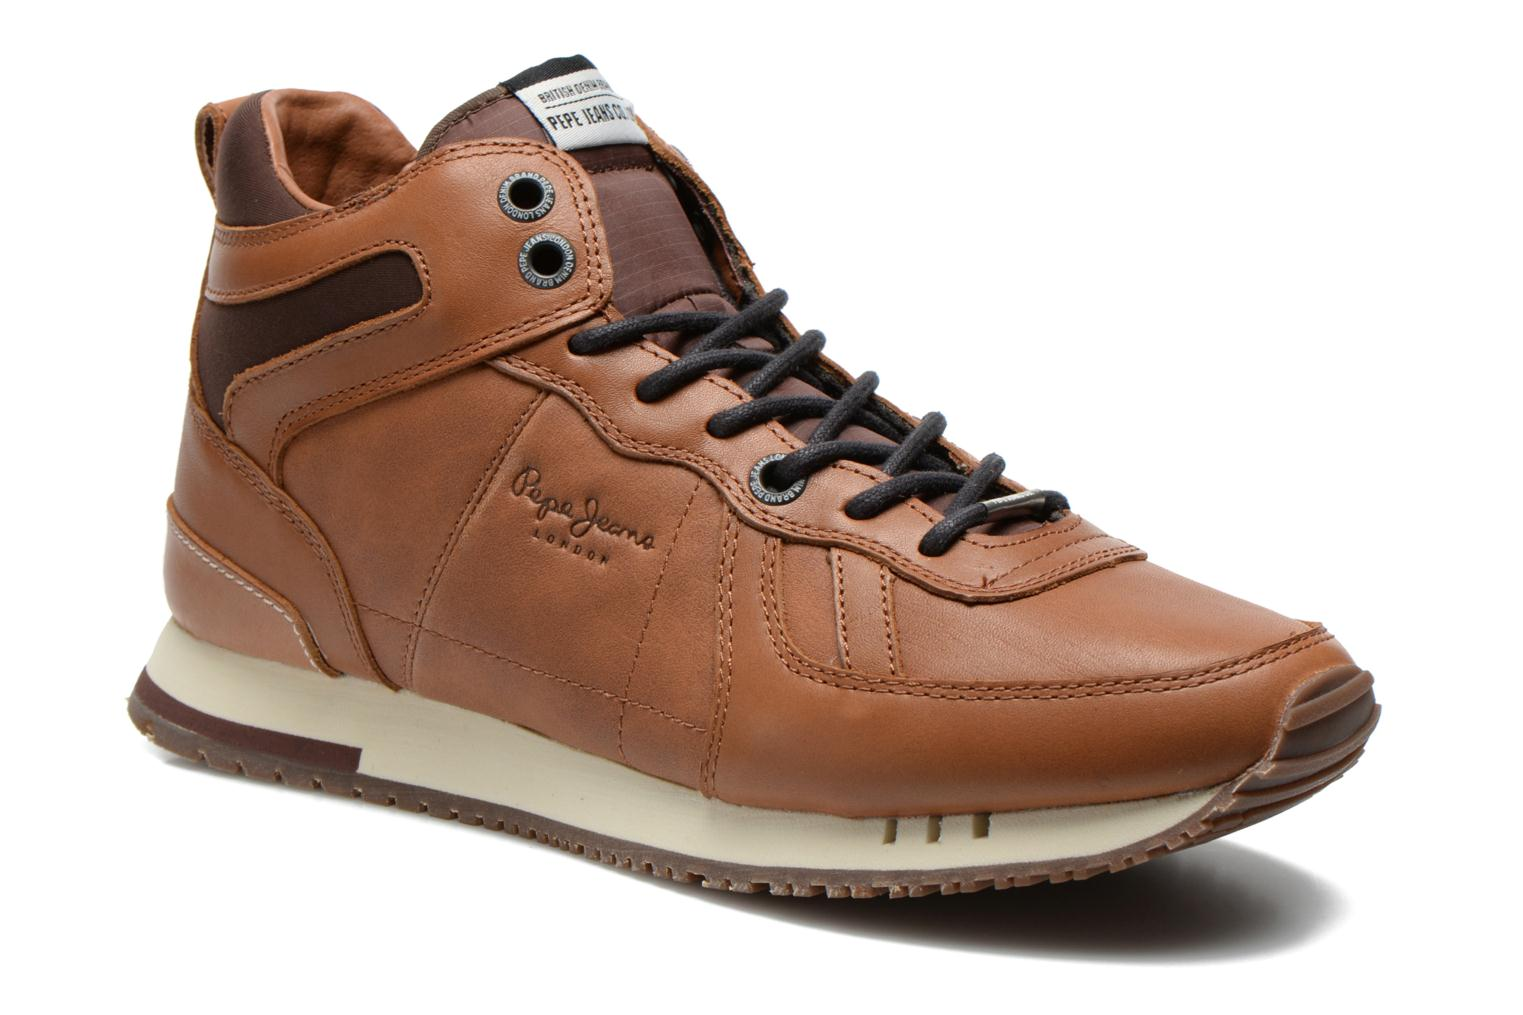 Sneakers Tinker Puller by Pepe jeans